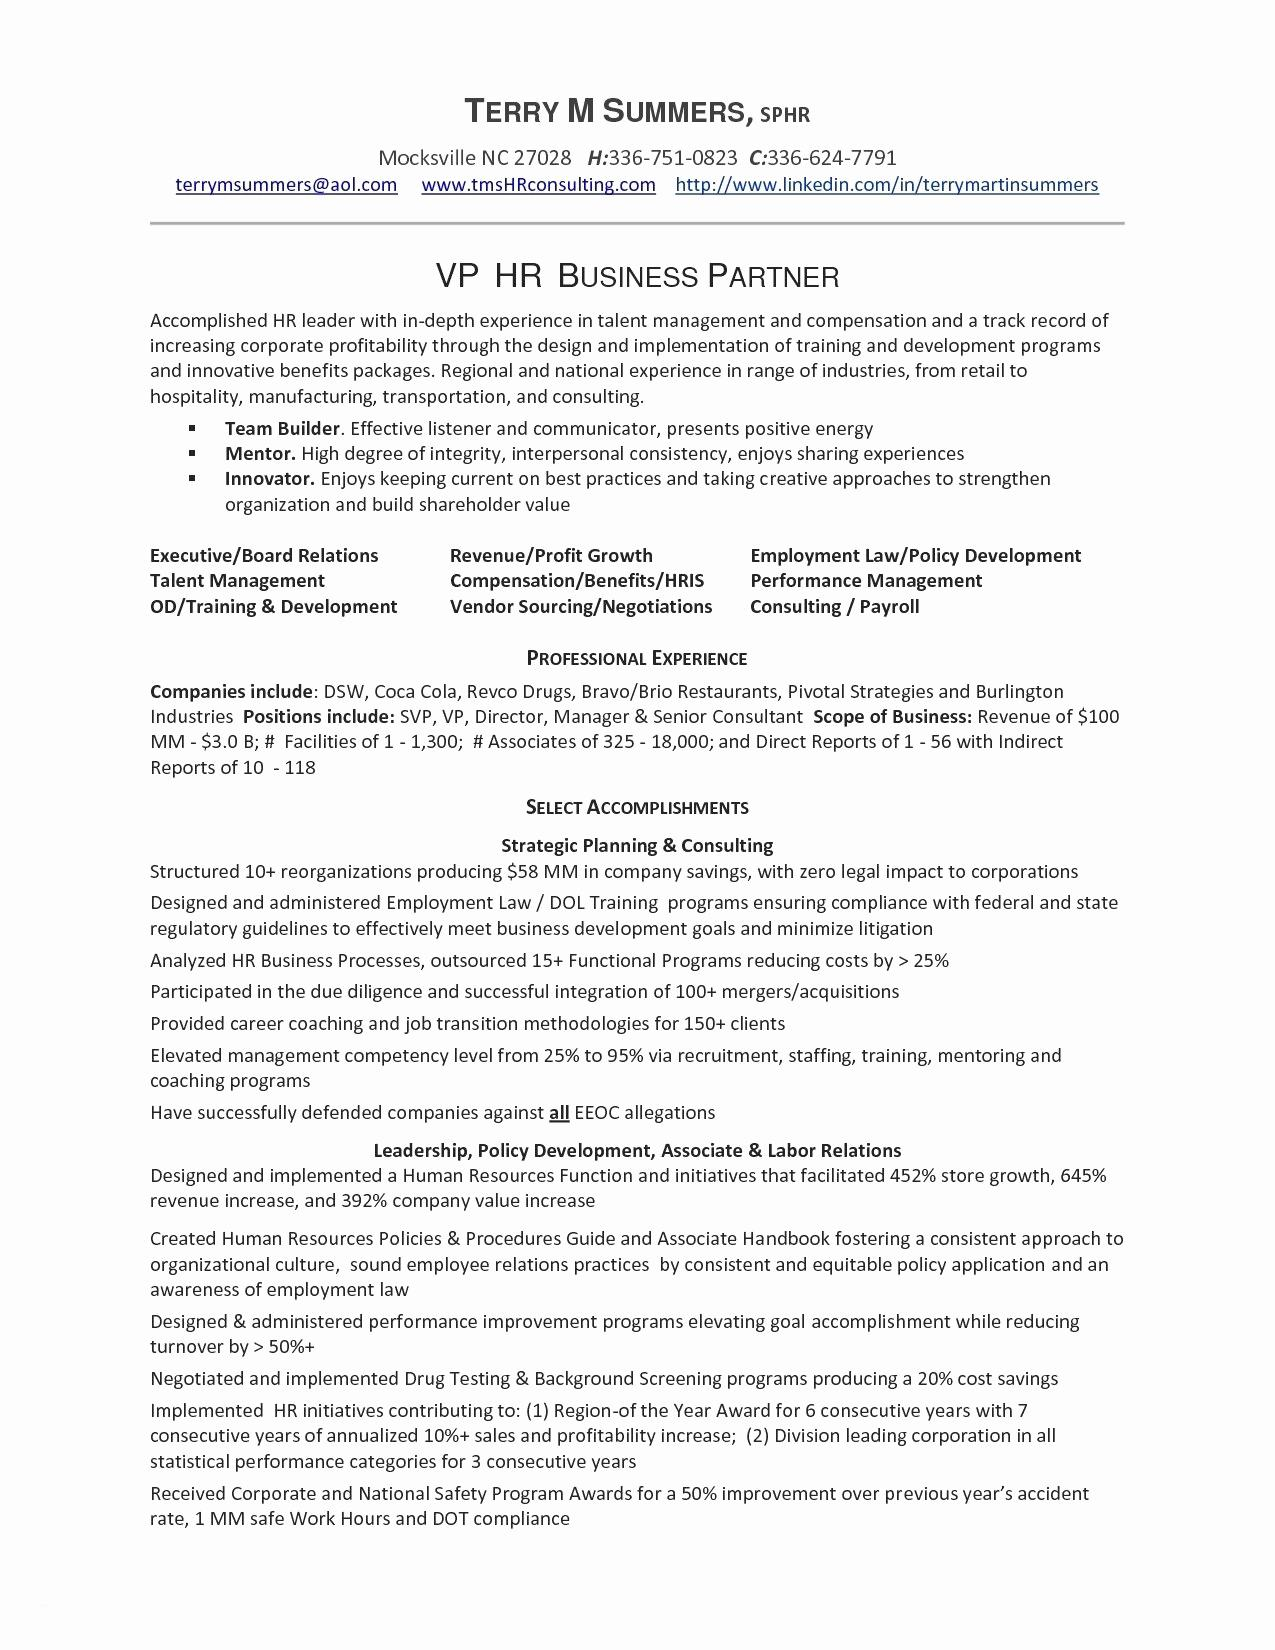 Leeds School Of Business Resume Template - 47 Luxury Sample Cover Letter Administrative assistant Resume